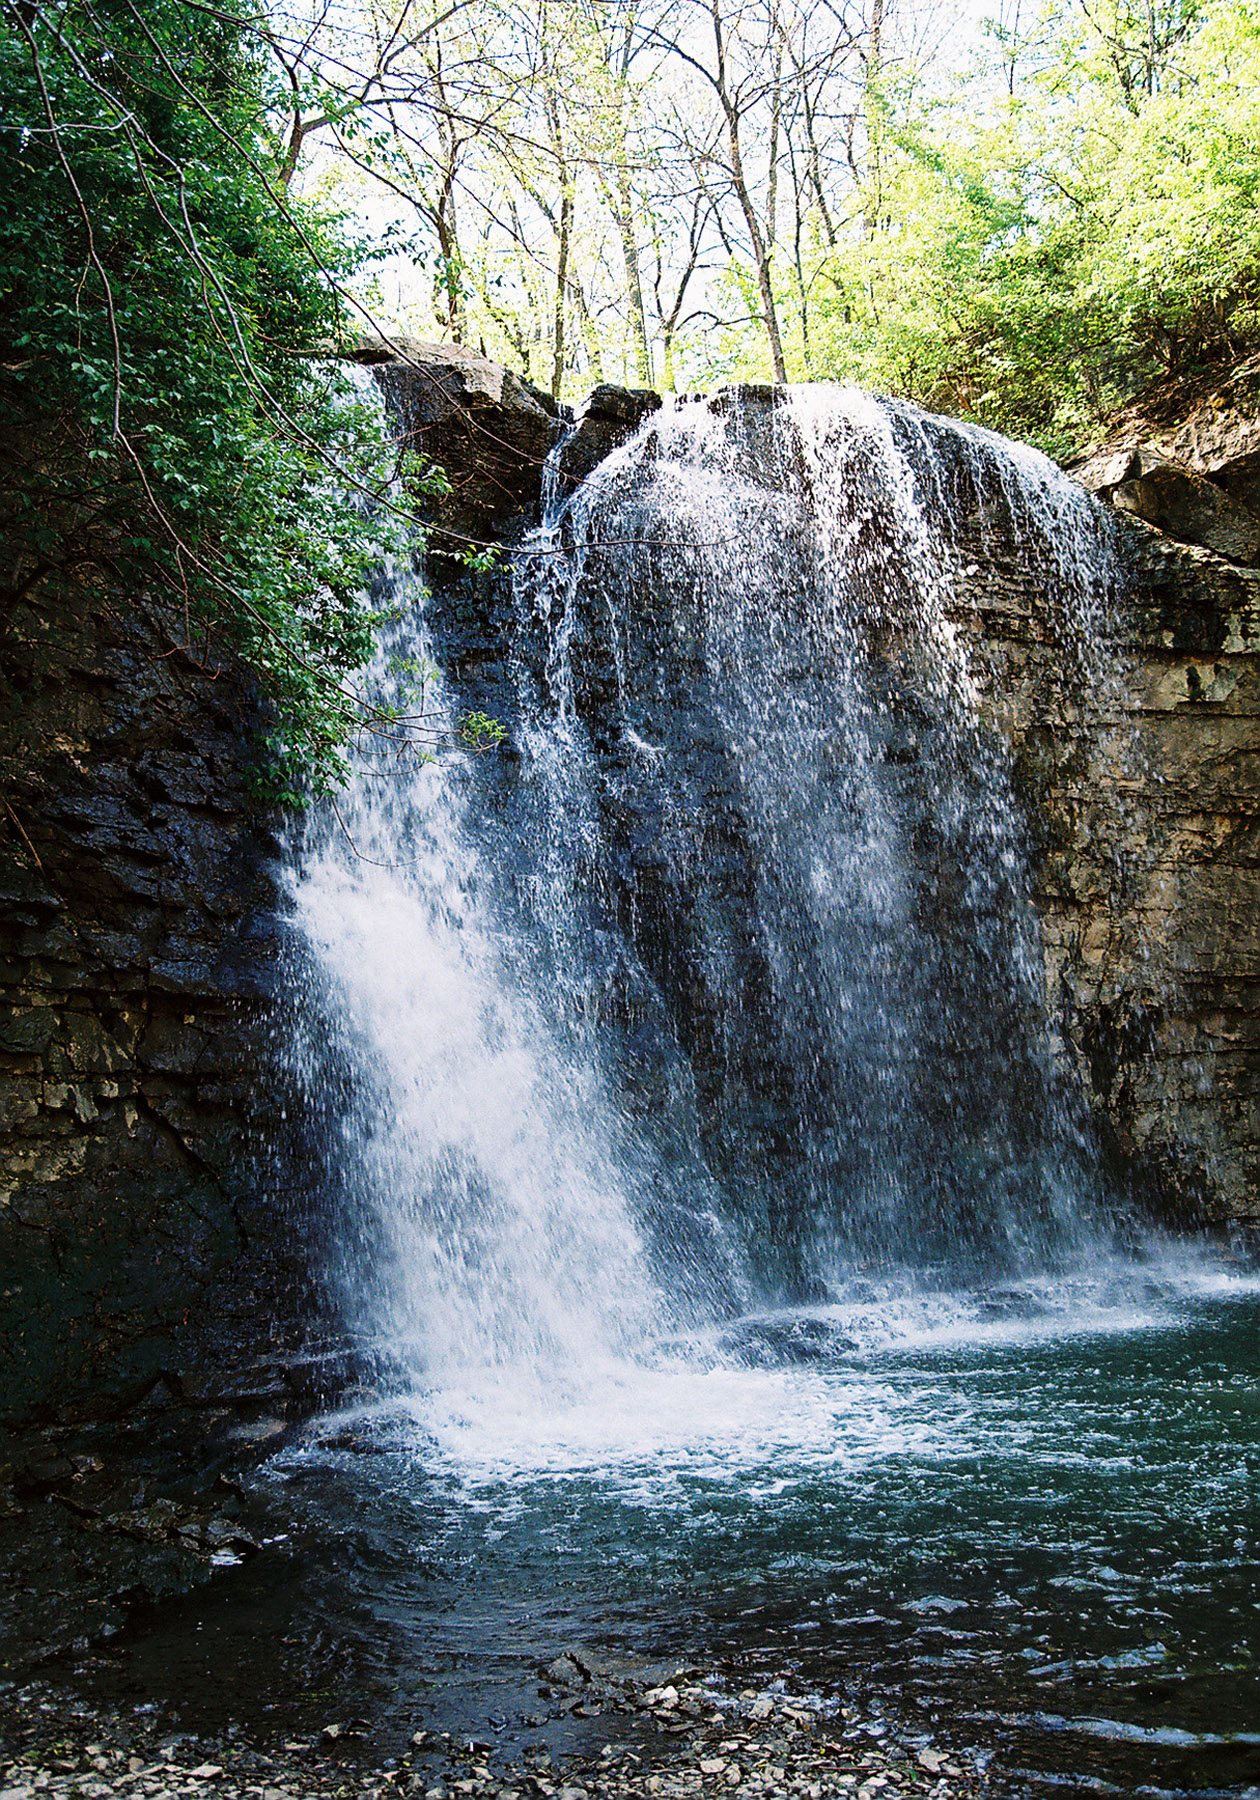 Waterfall that empties into the Scioto River. Franklin County, Ohio